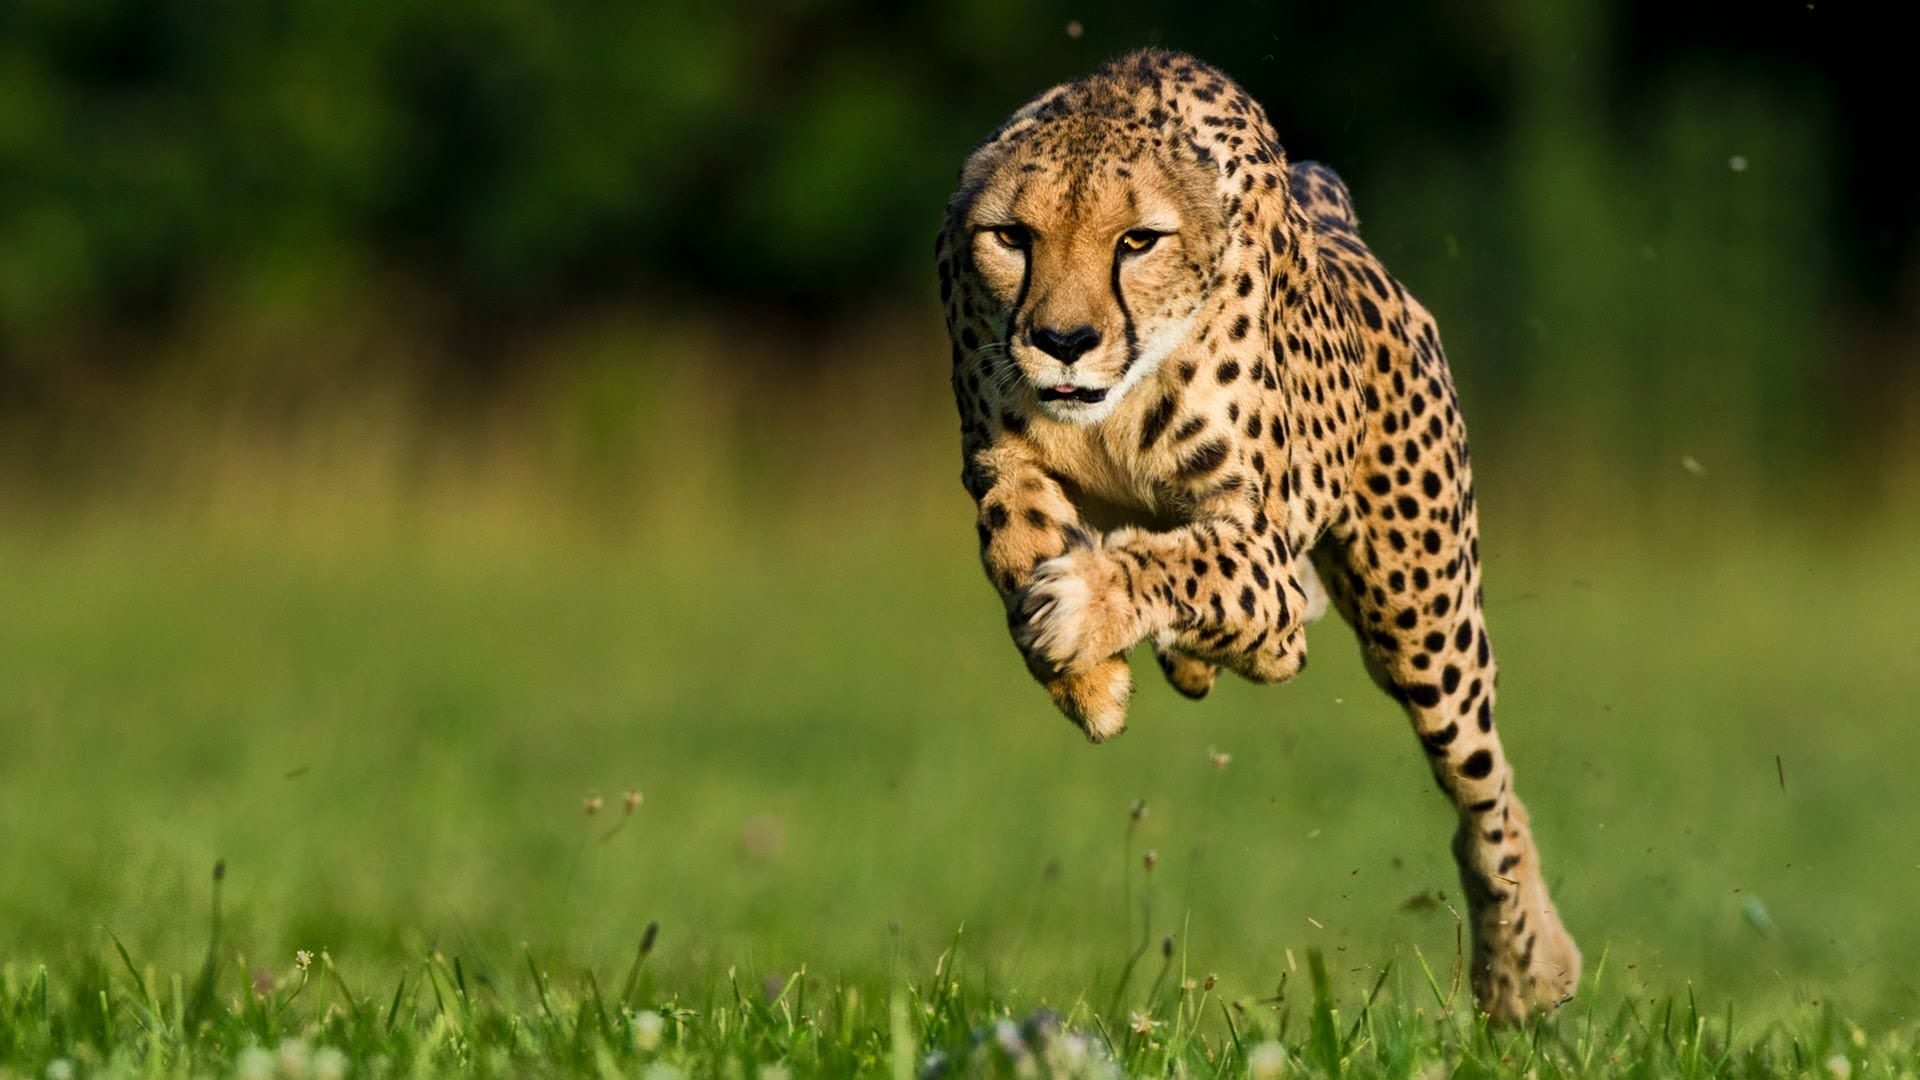 Top Running Cheetah Wallpapers In High Quality GOLDWALL